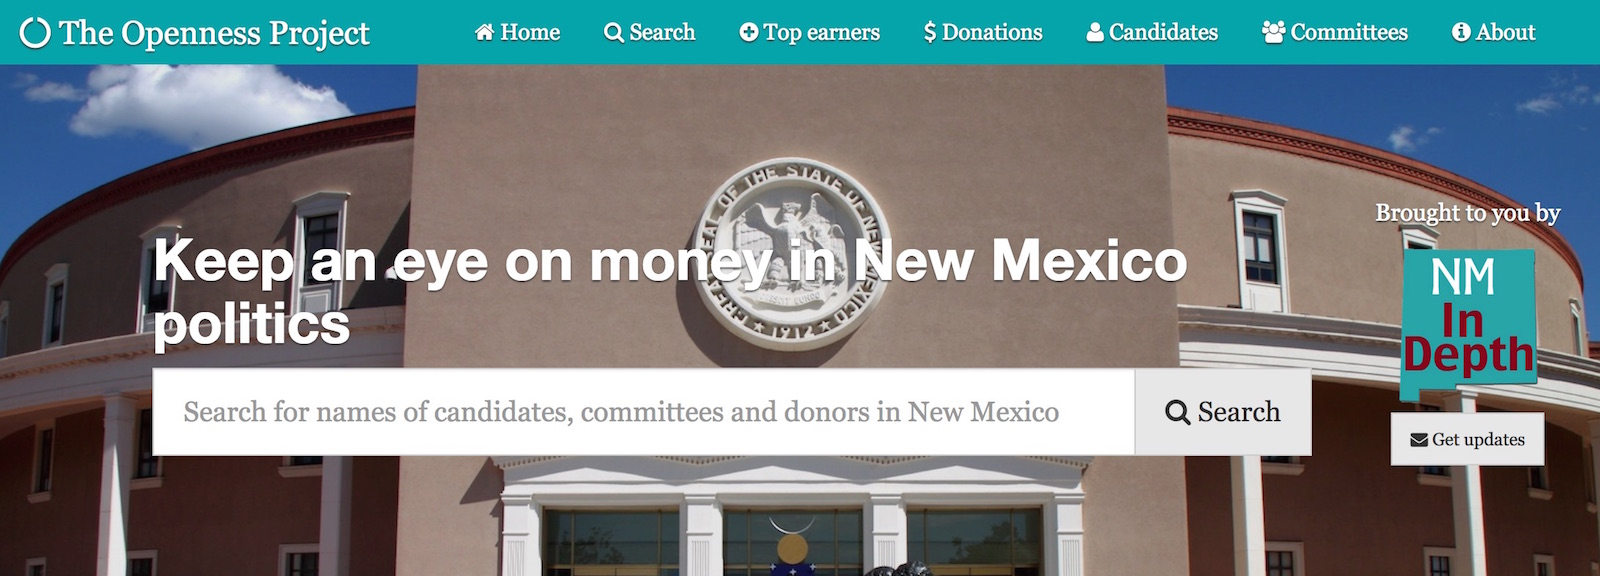 Following the money in New Mexico politics just got a whole lot easier